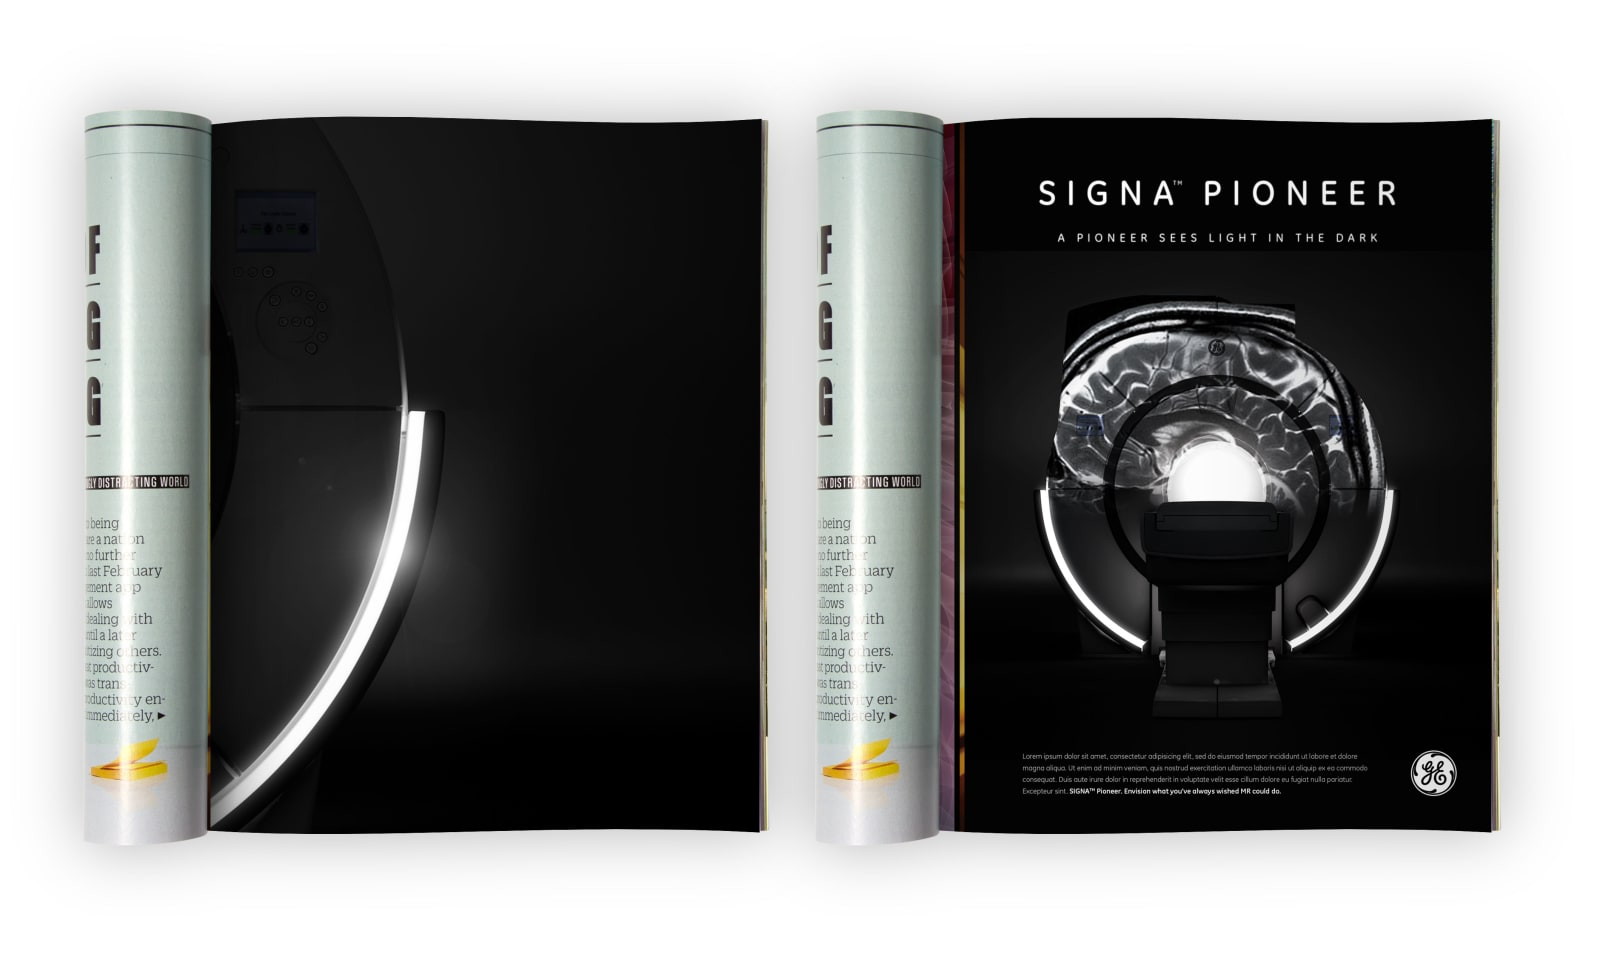 GE Signa Pioneer Illumination Ads